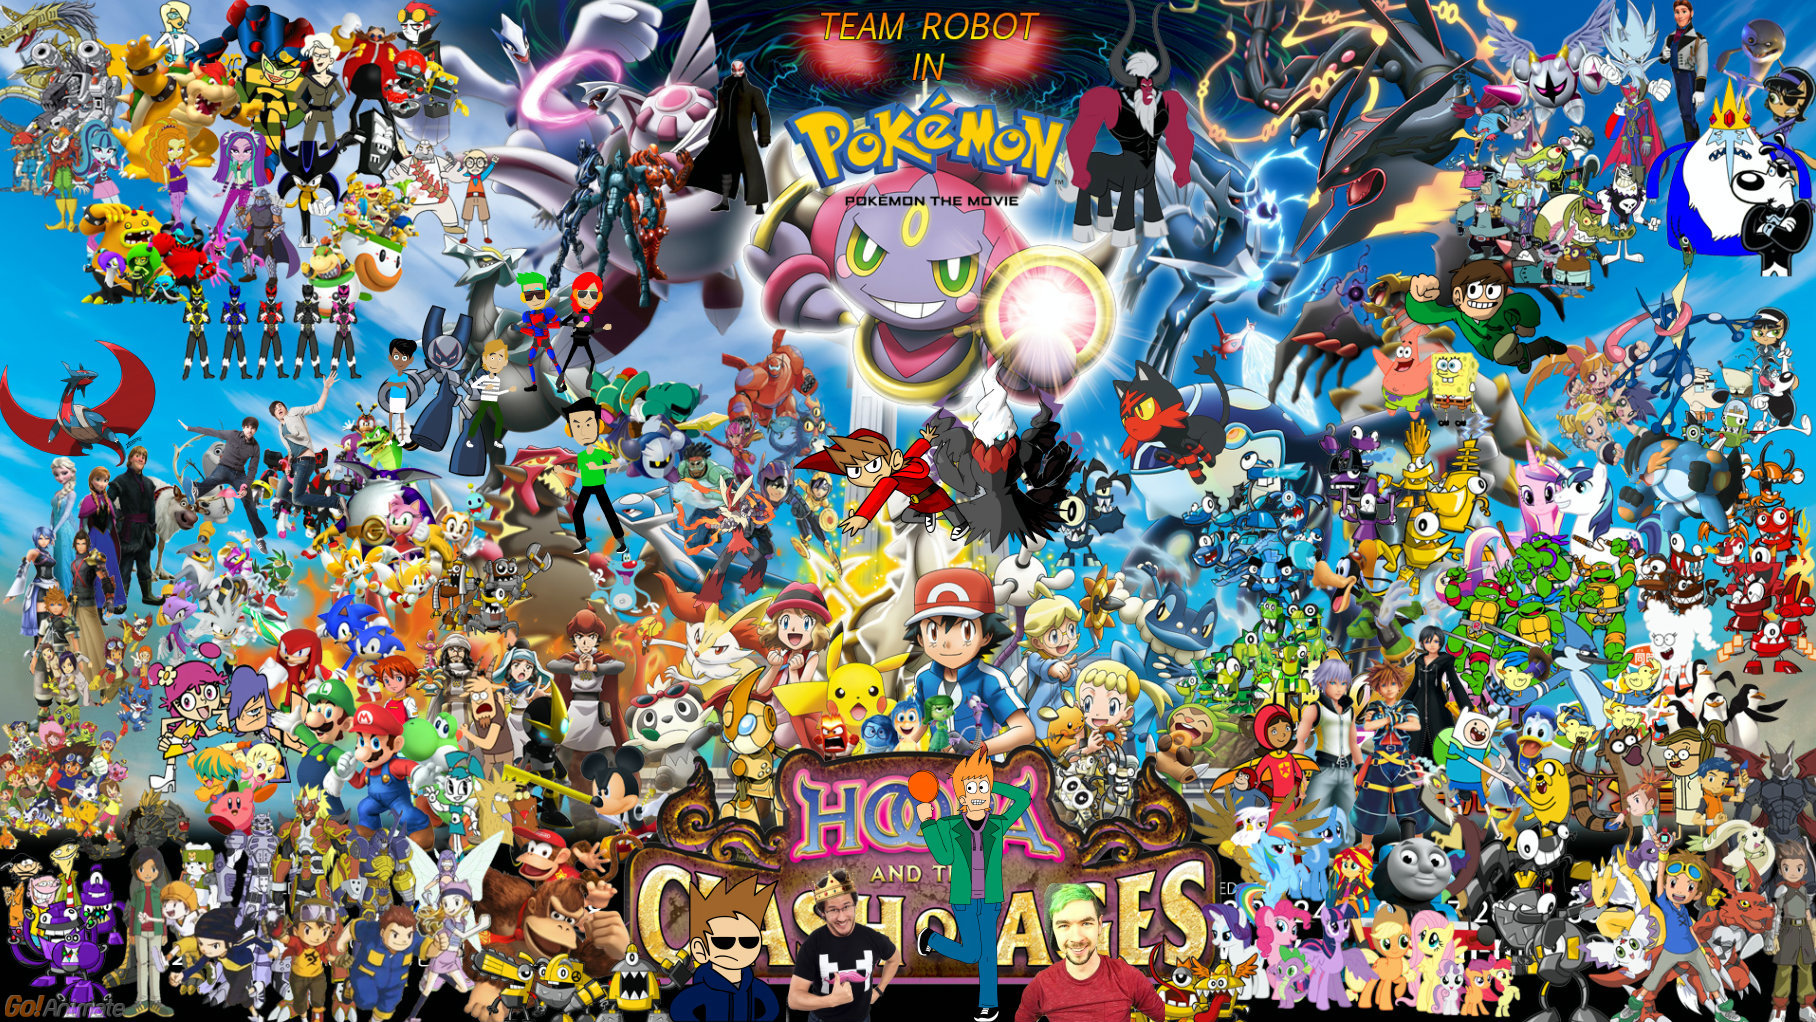 Team Robot In Pokemon Hoops And The Clash Of Ages By Kidzoni1000 On Deviantart